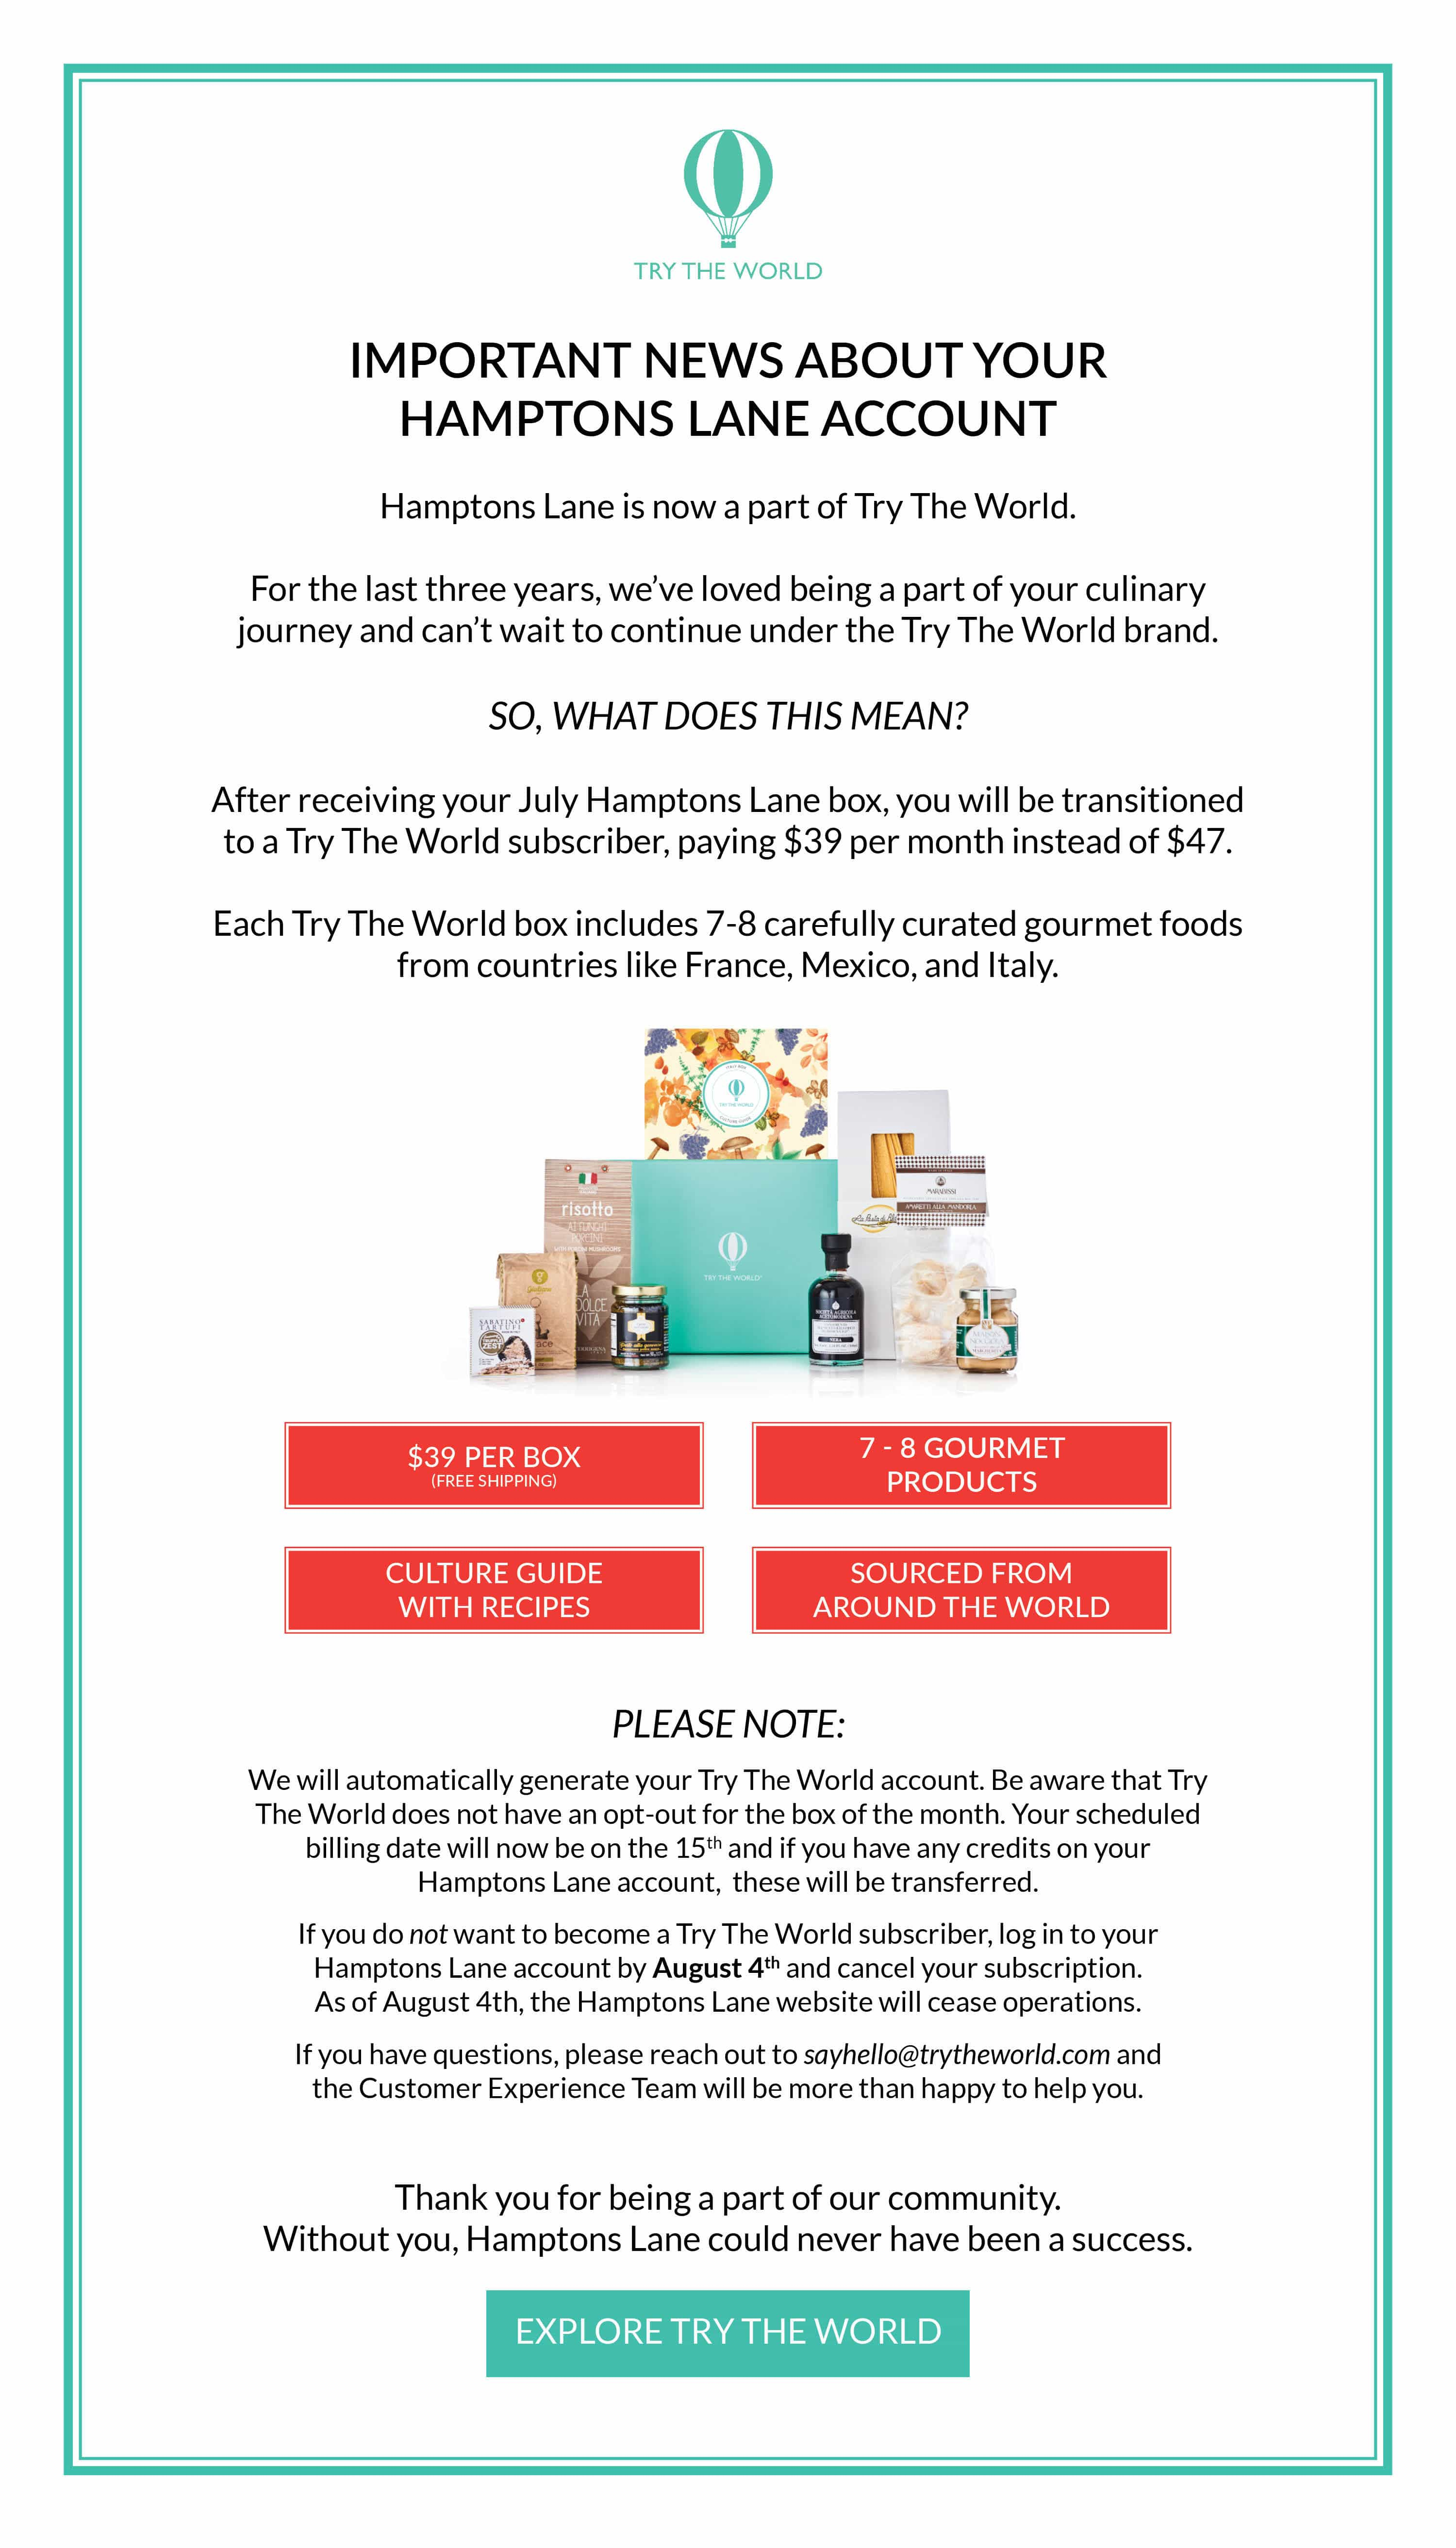 Hamptons Lane Subscriptions Ending – Now Part of Try The World!